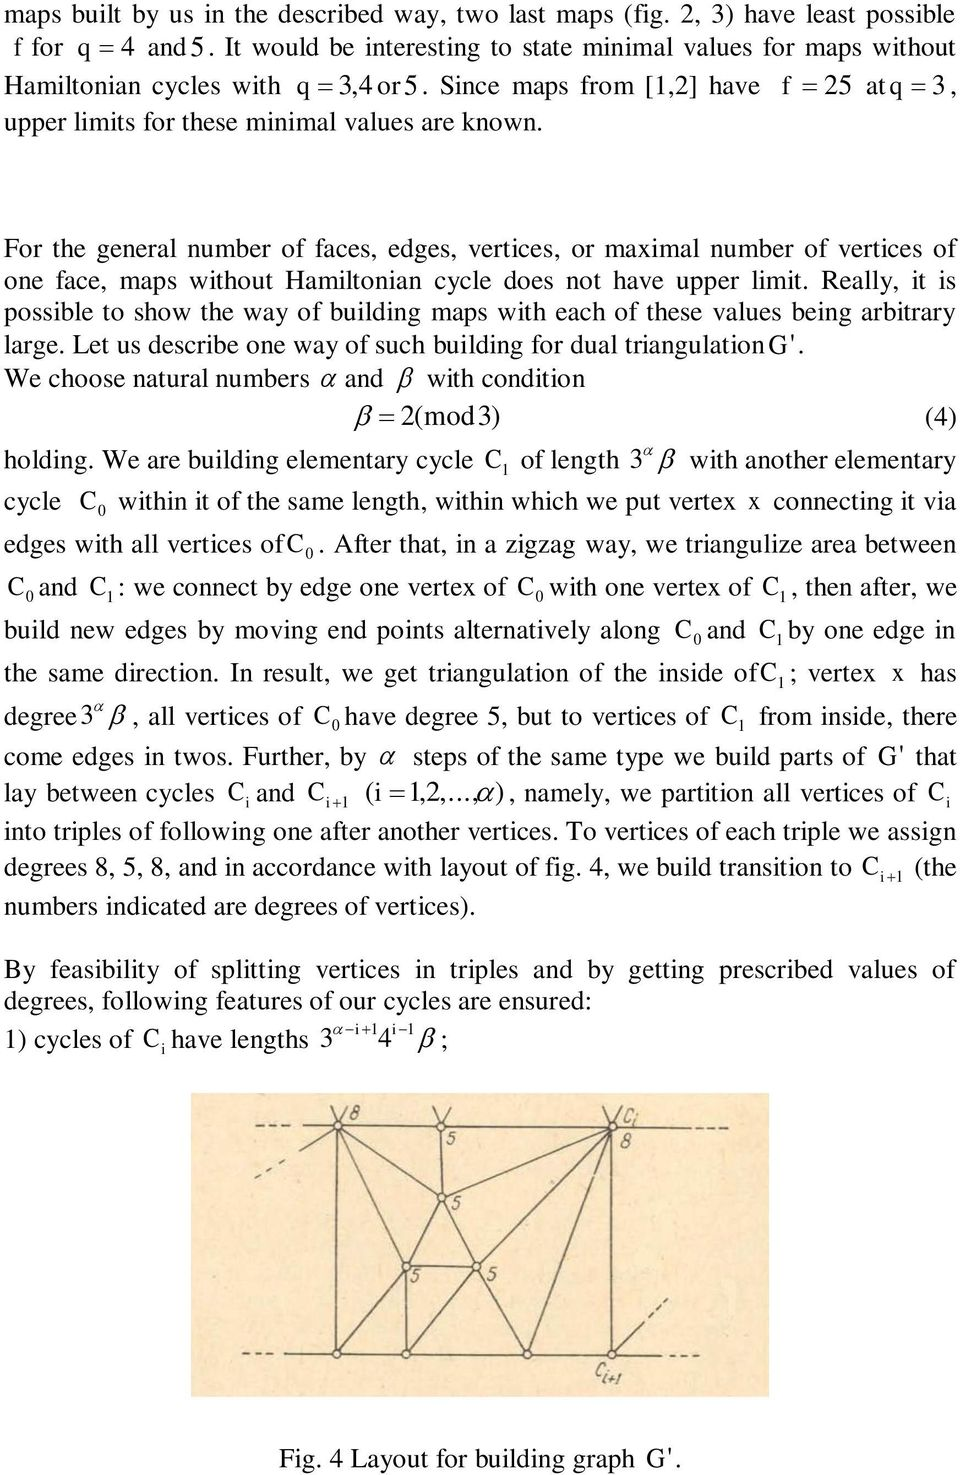 For the general number of faces, edges, vertices, or maximal number of vertices of one face, maps without Hamiltonian cycle does not have upper limit.